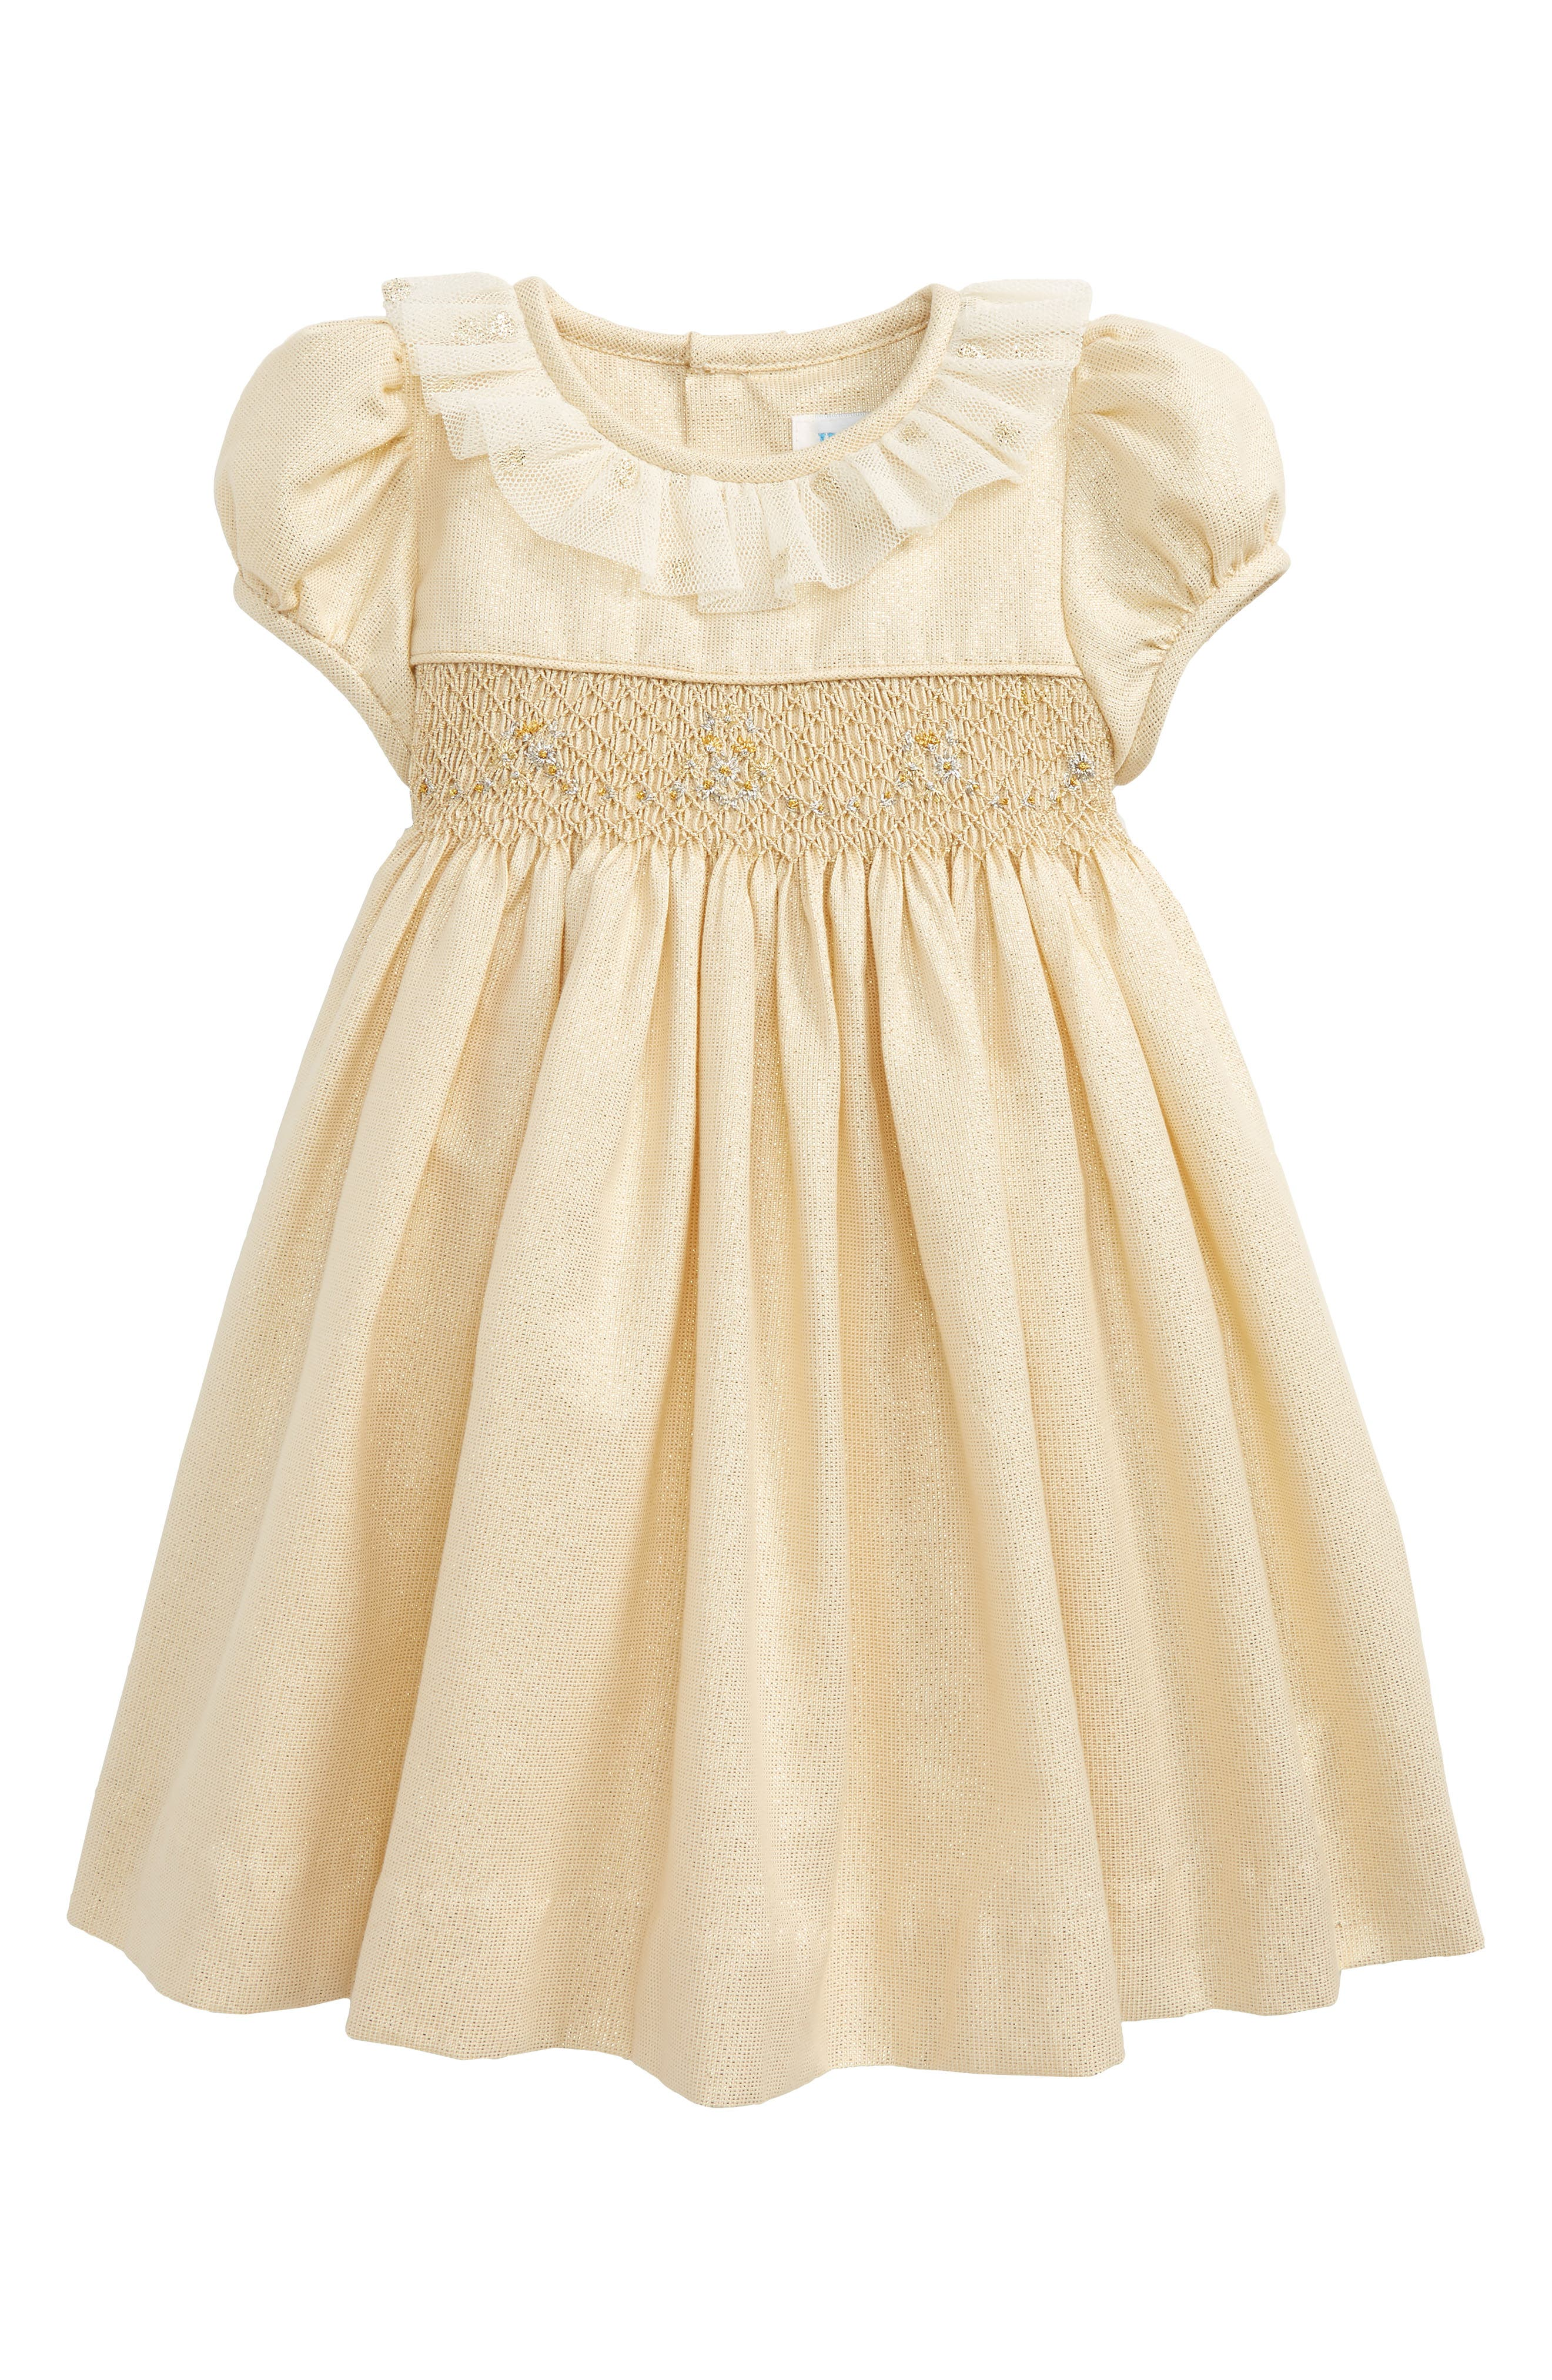 Canary yellow baby dress.